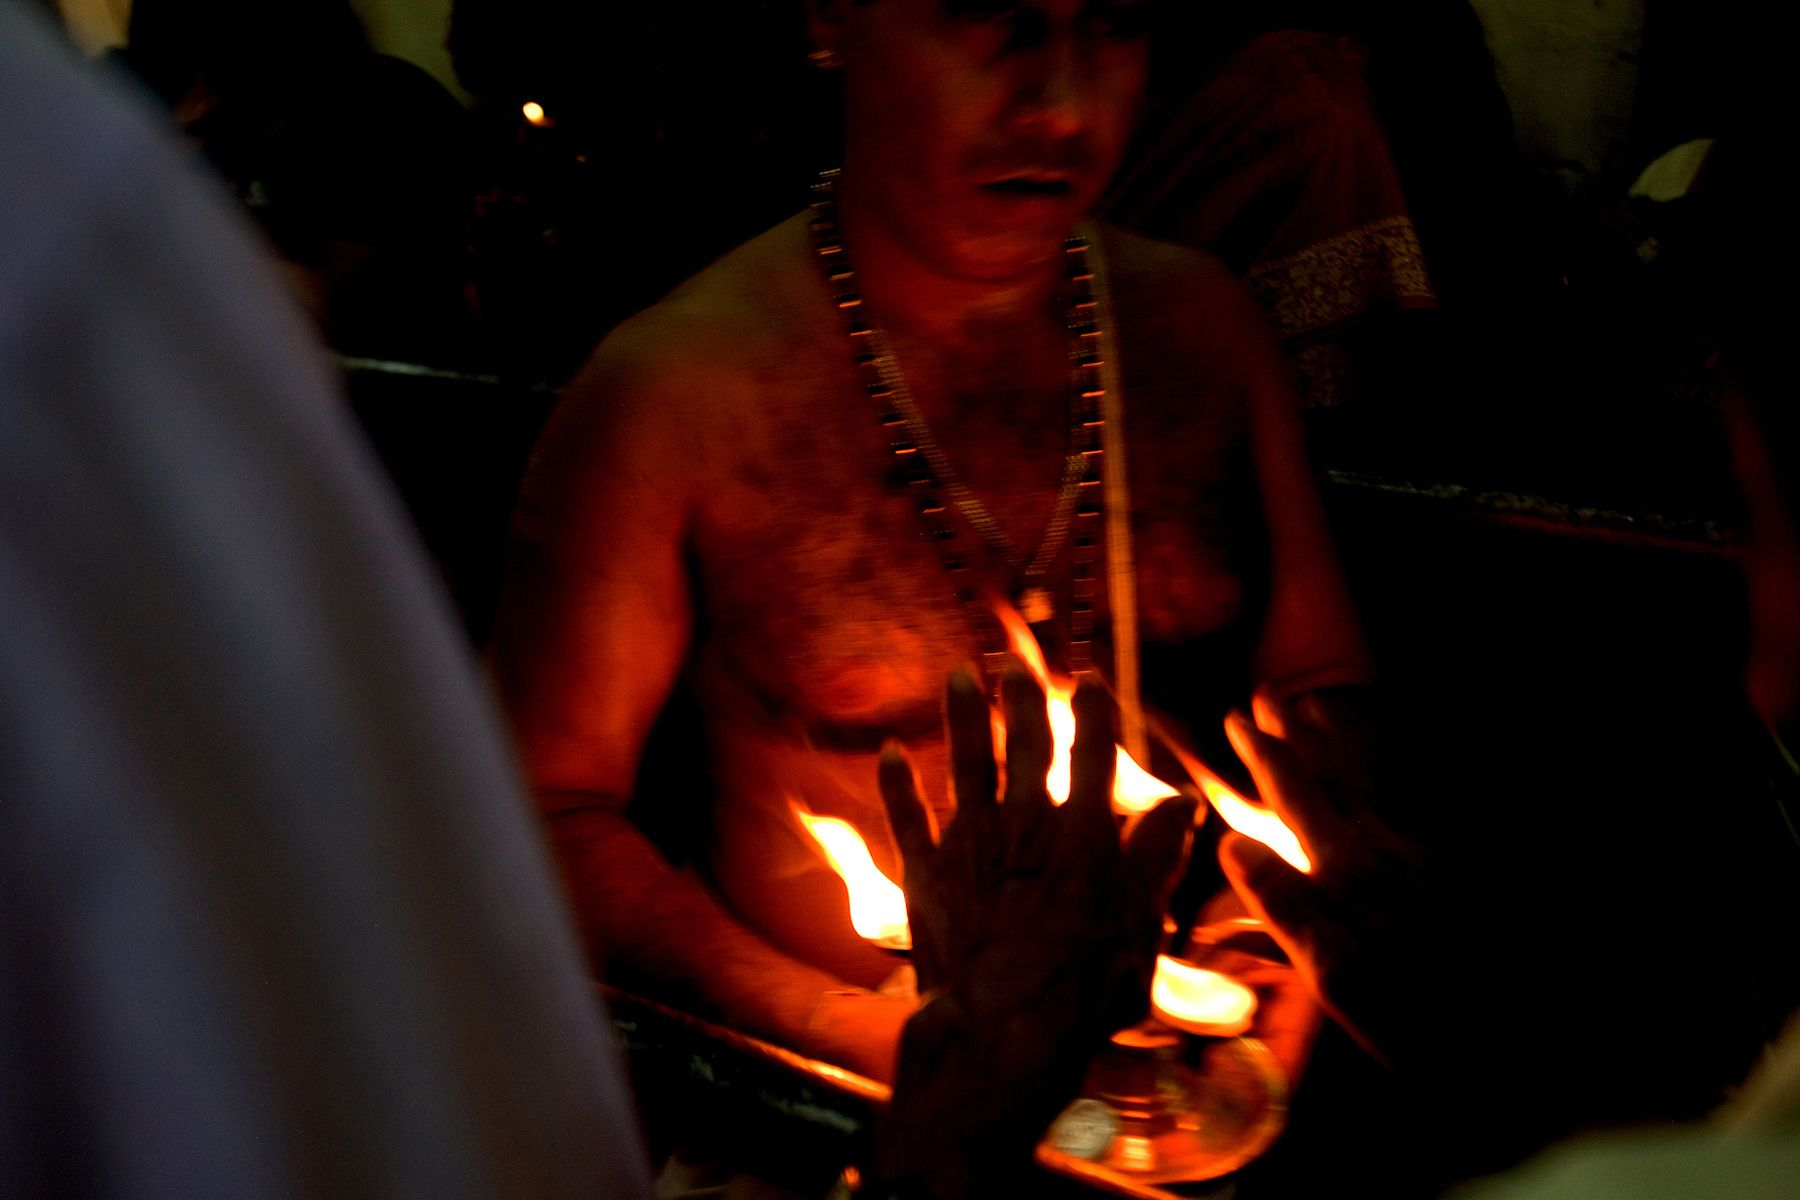 Tamil people pray at a Hindu Temple.